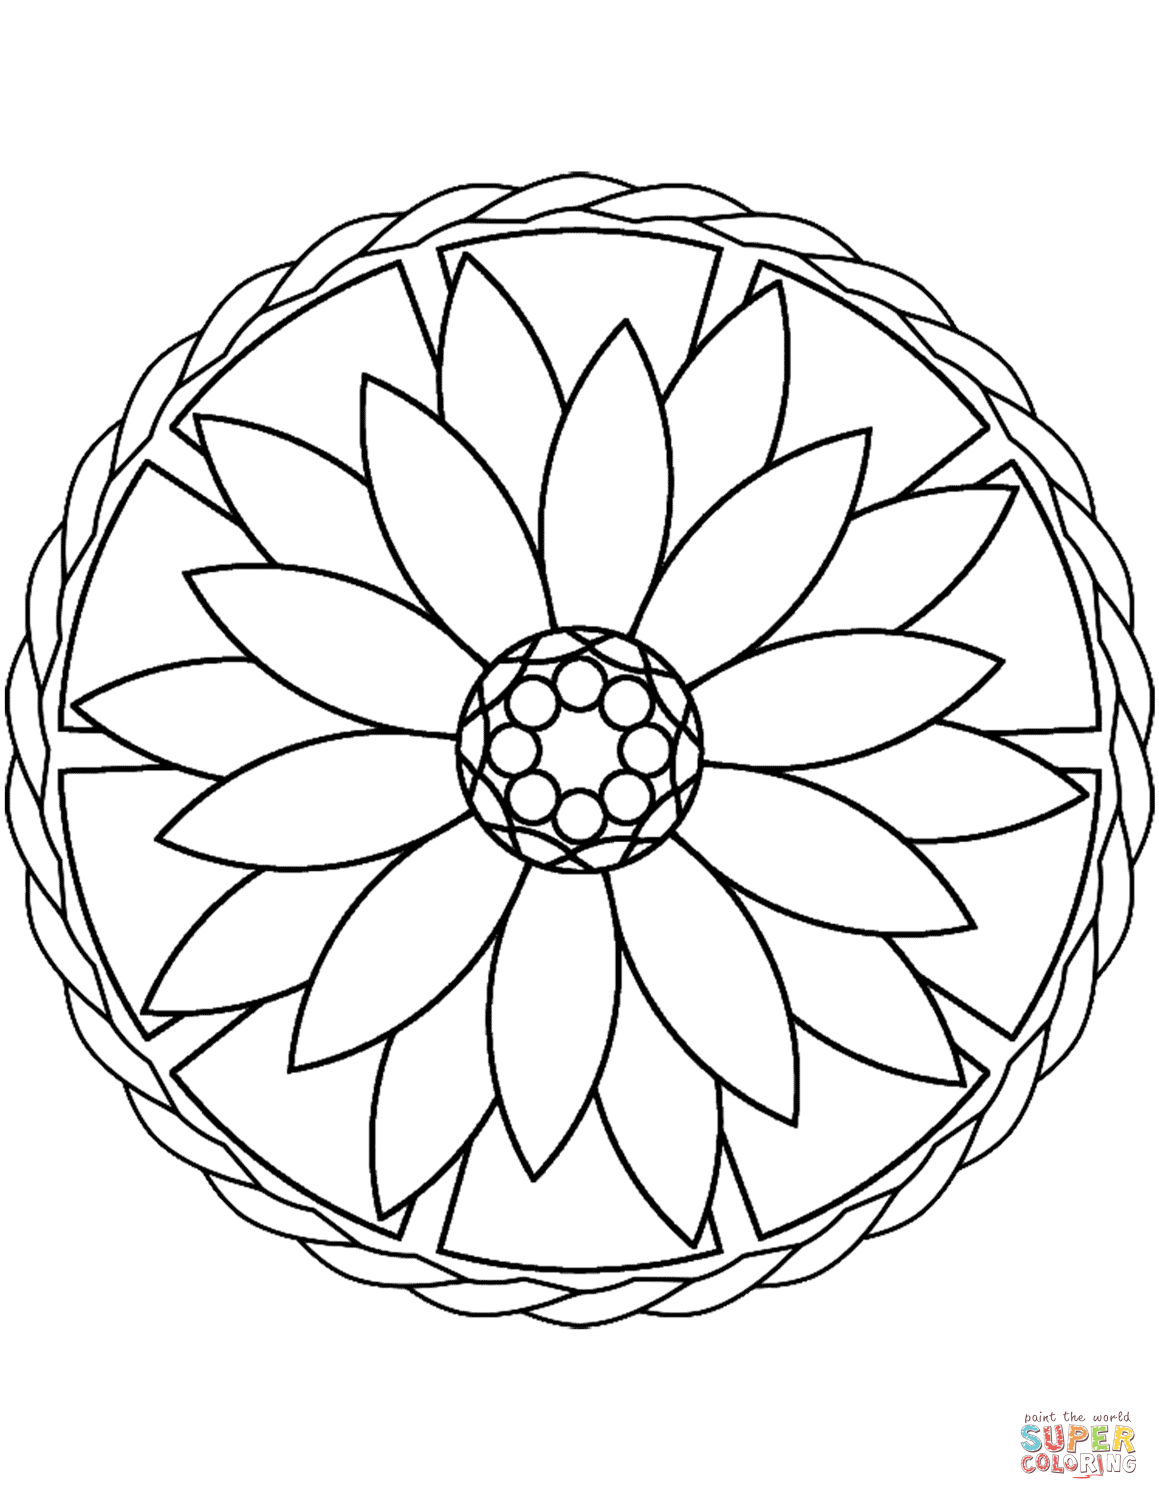 1159x1500 Simple Mandala With Flower Coloring Page For Pages